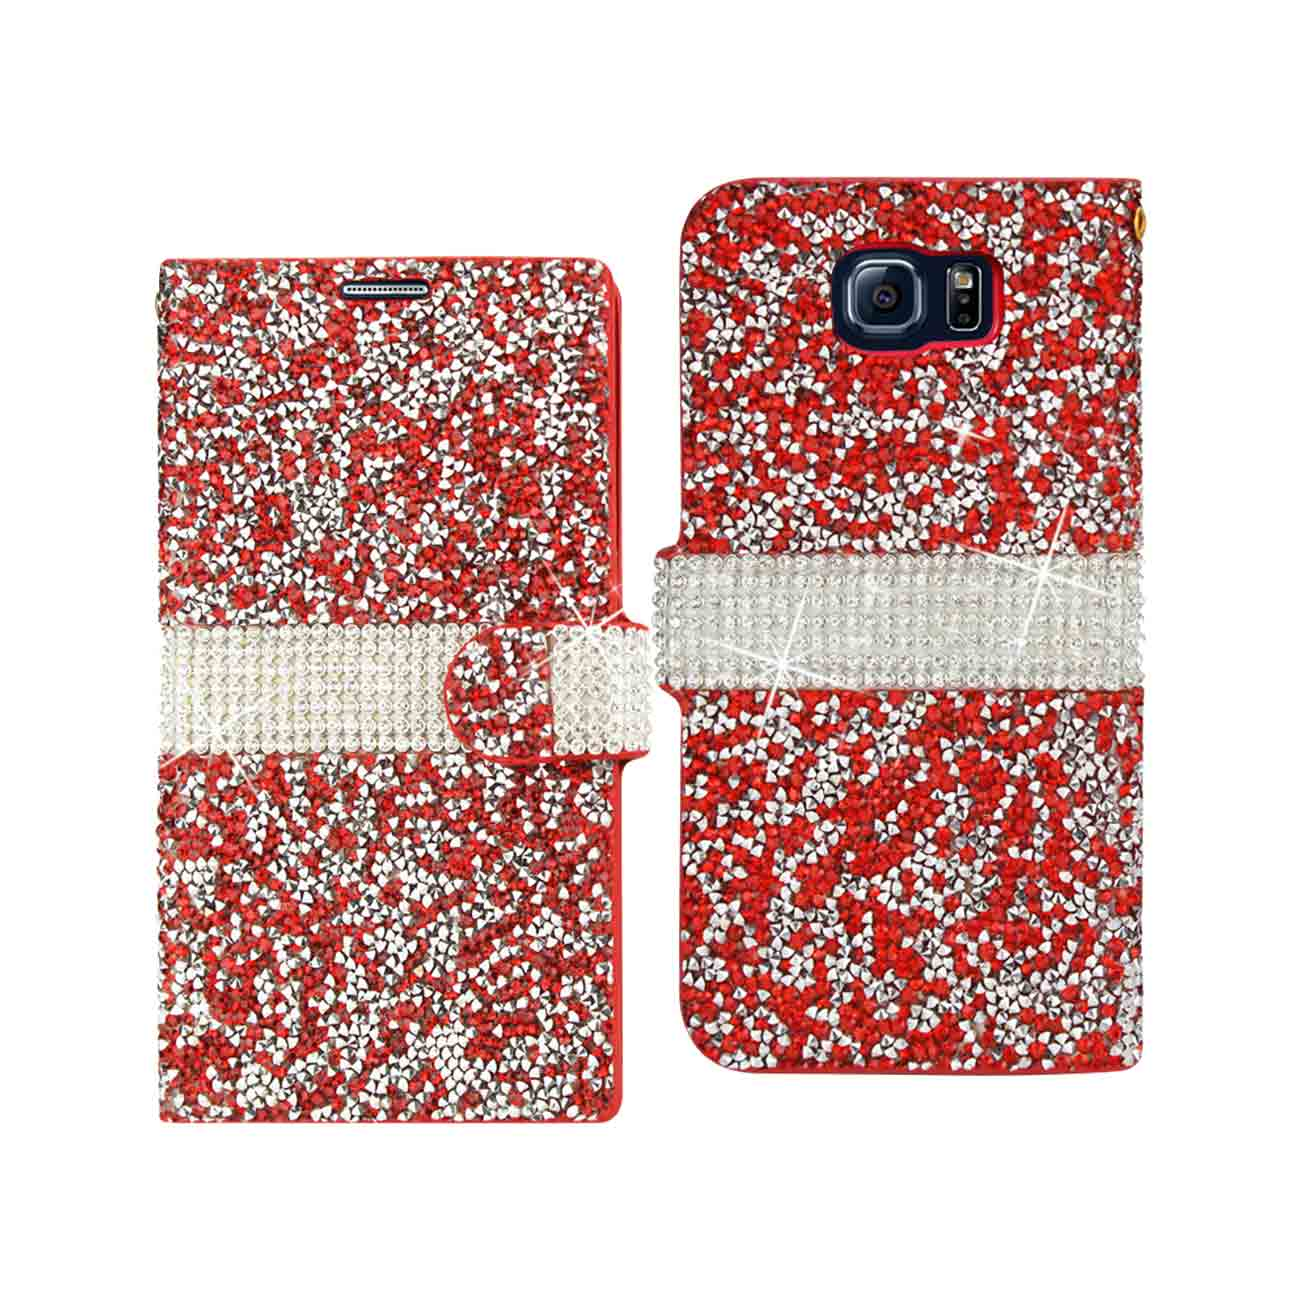 SAMSUNG GALAXY S6 JEWELRY RHINESTONE WALLET CASE IN RED